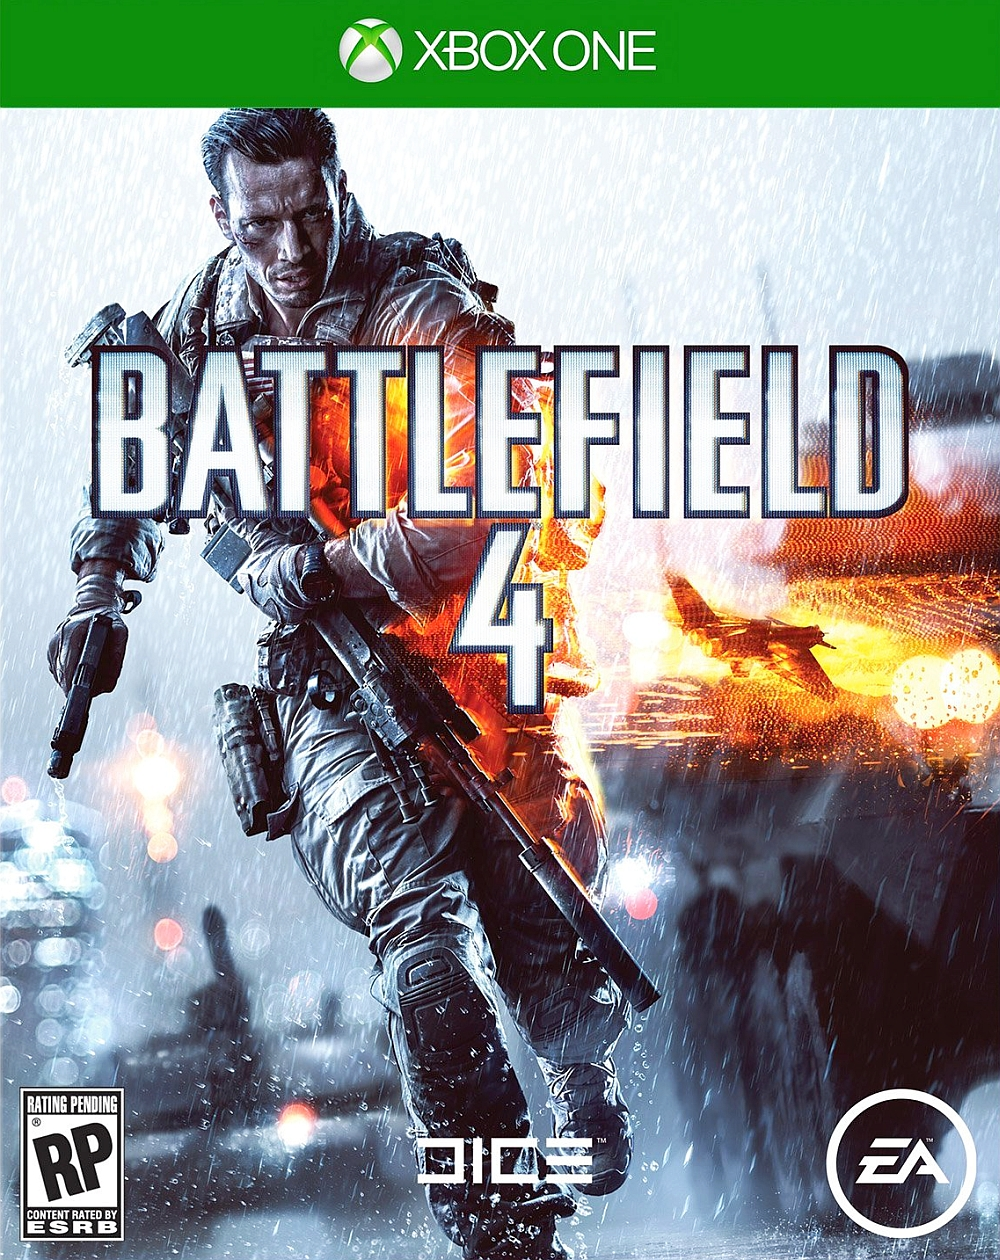 How long will you have to wait for Battlefield 4   s second DLC    Xbox One Battlefield 4